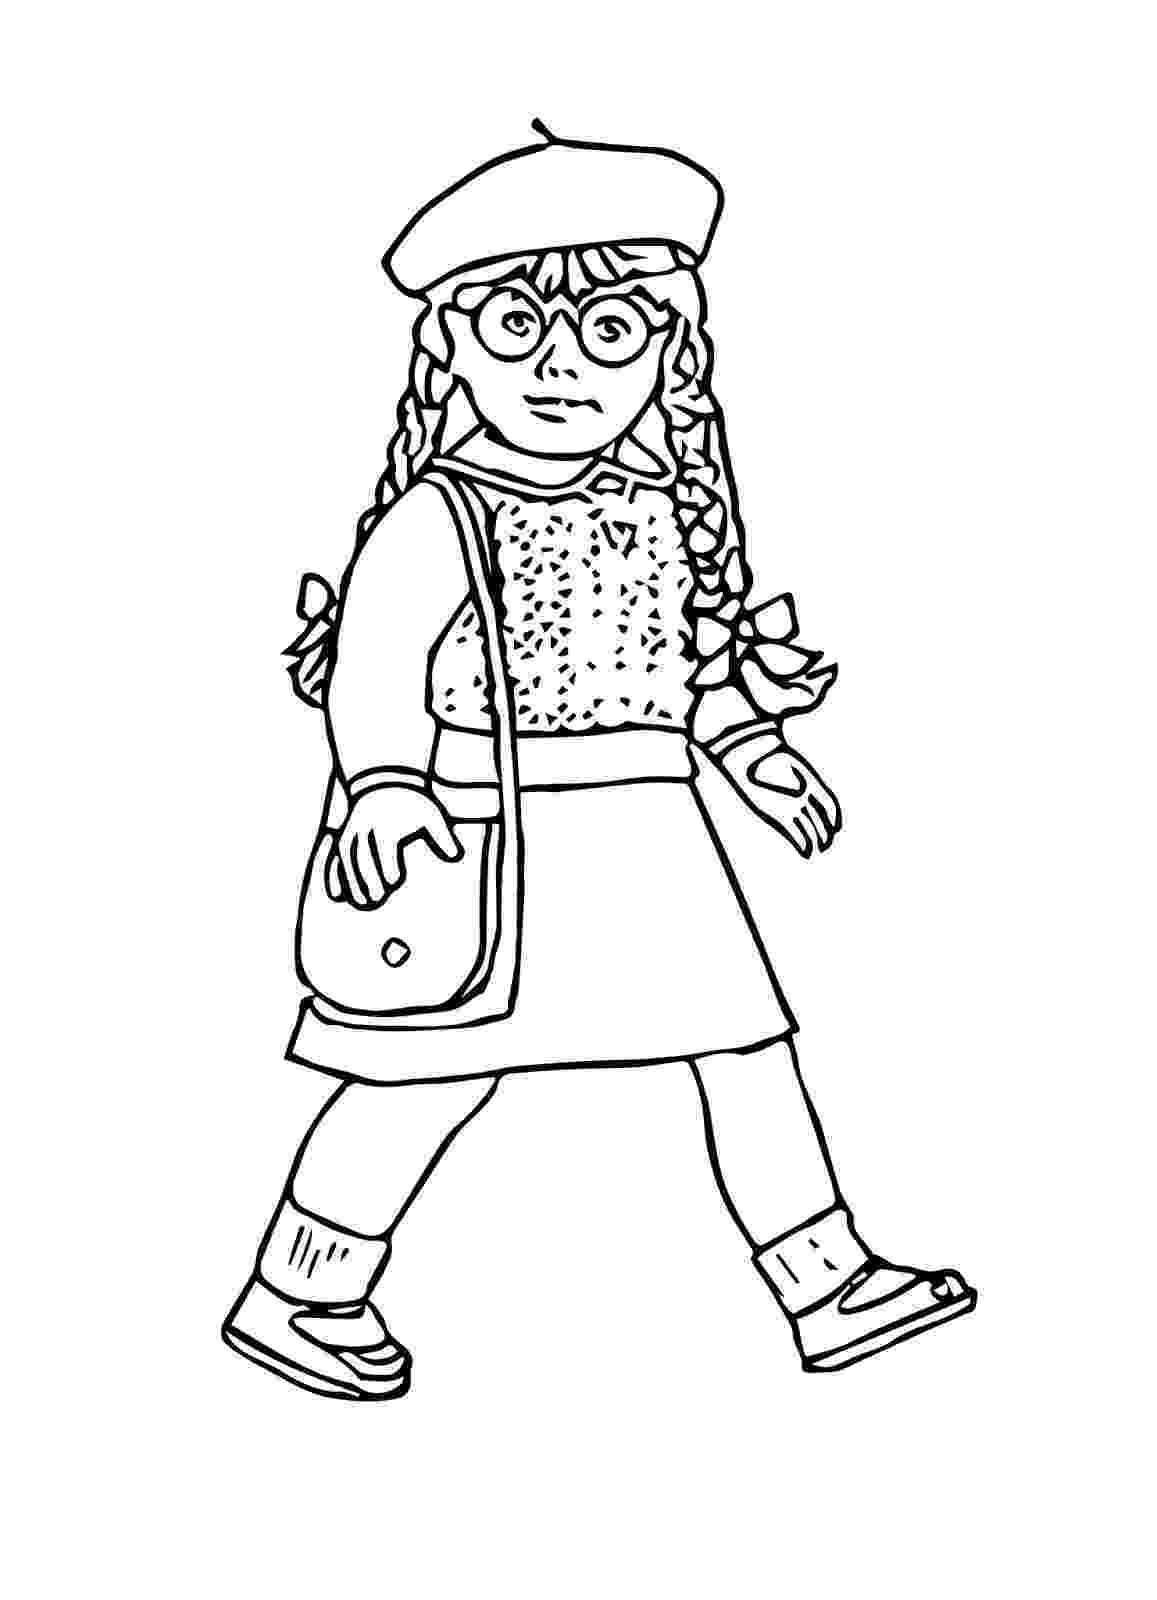 american girl doll free coloring pages american girl coloring pages best coloring pages for kids doll coloring pages girl american free